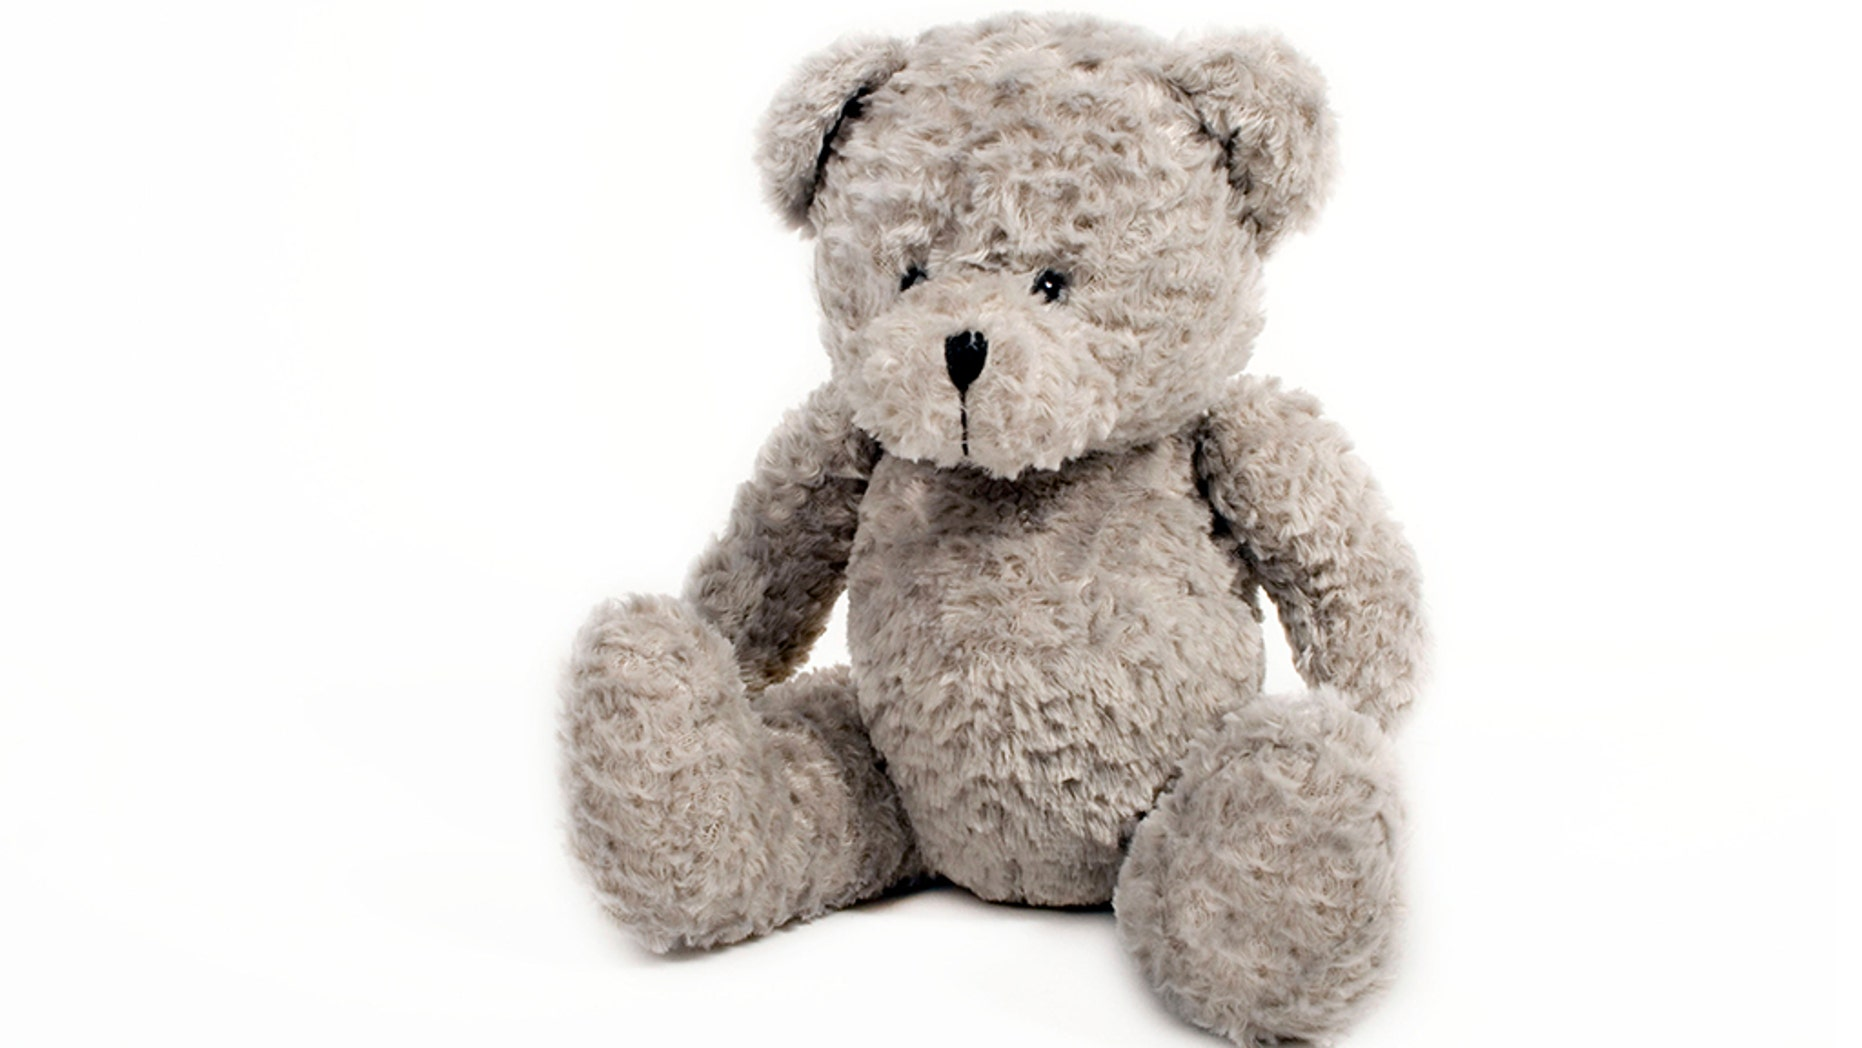 Police in Lebanon, Tennessee said Sunday that a woman, whose child won a teddy bear at a county fair, discovered a camera placed inside the stuffed animal.